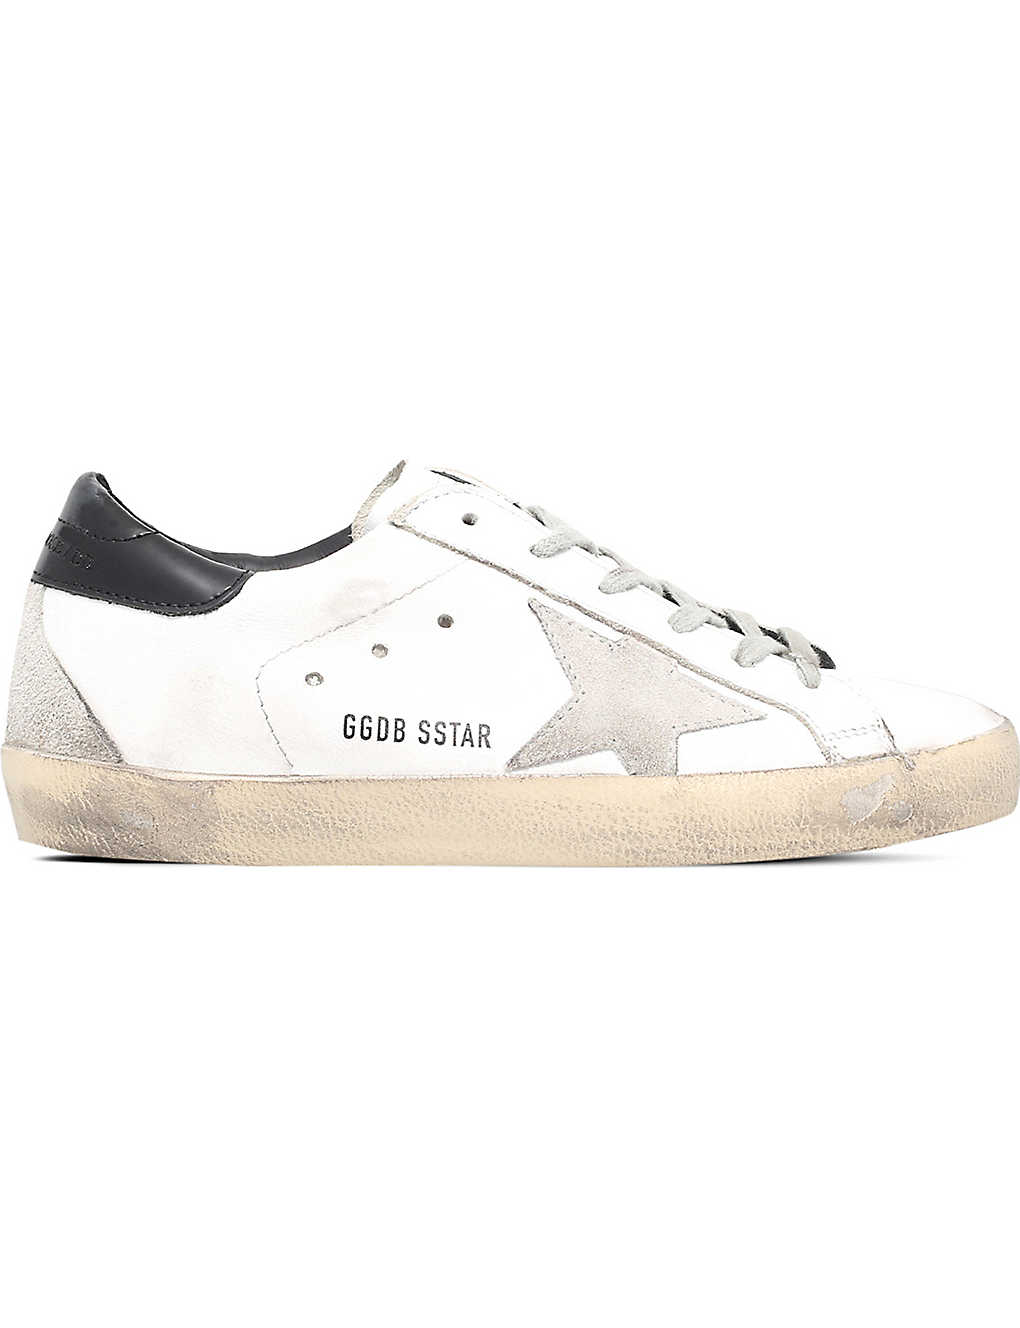 9e1a1c98fa5 GOLDEN GOOSE - Super star suede and leather trainers | Selfridges.com